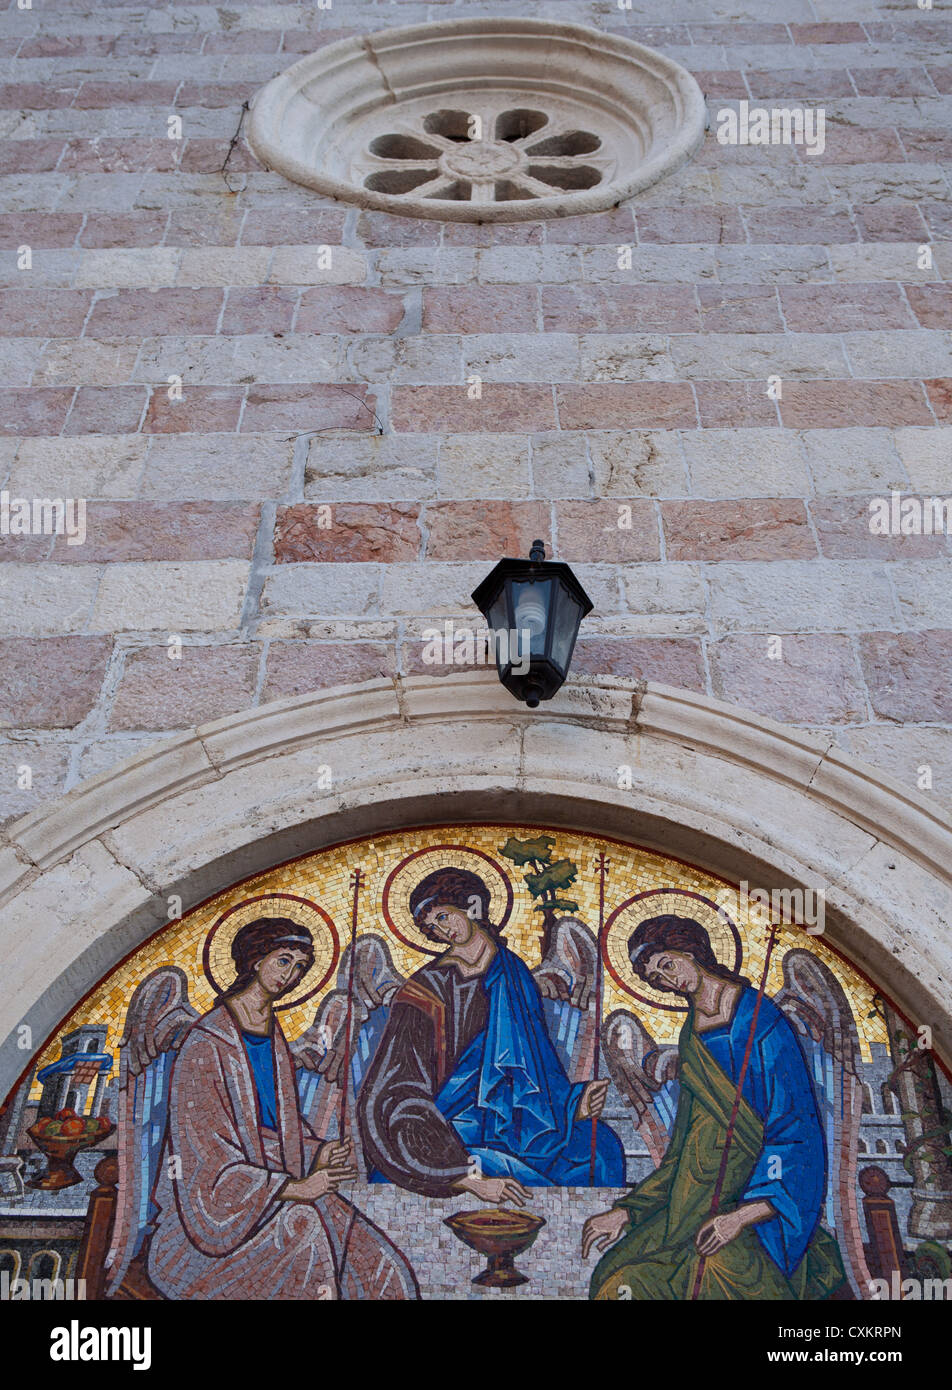 religious mural on church, Budva, Montenegro - Stock Image